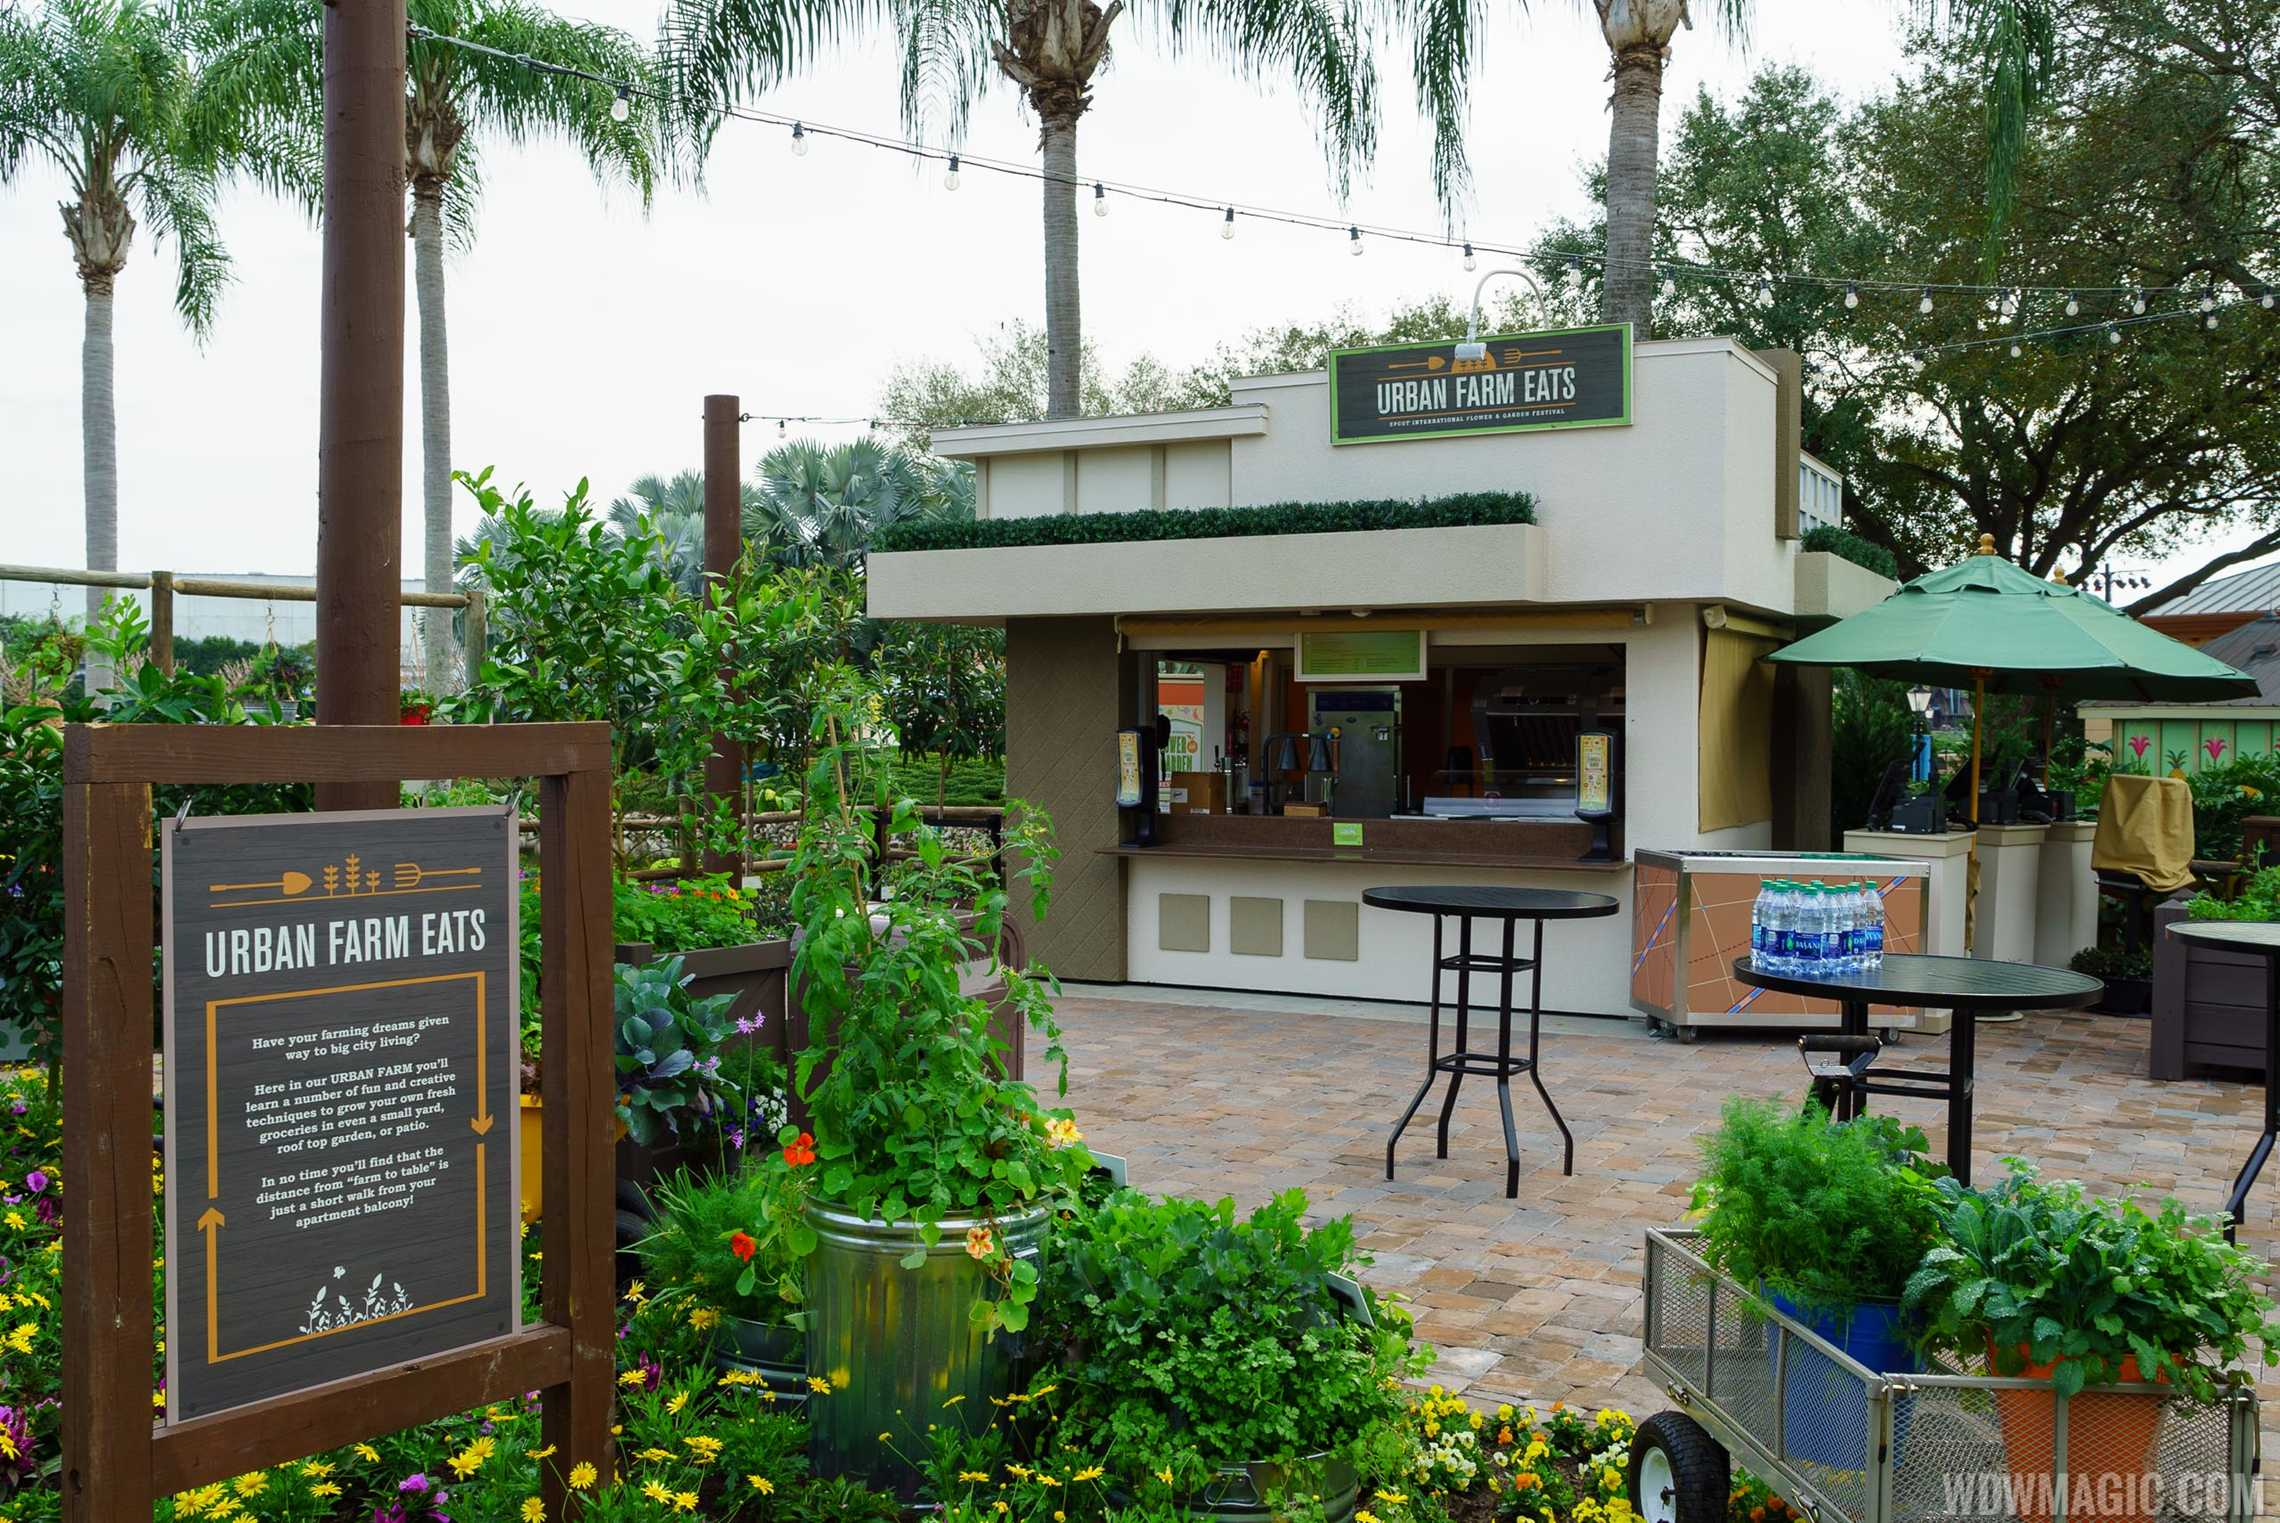 2016 Epcot Flower and Garden Festival Outdoor Kitchen kiosks - Urban Farm East kiosk